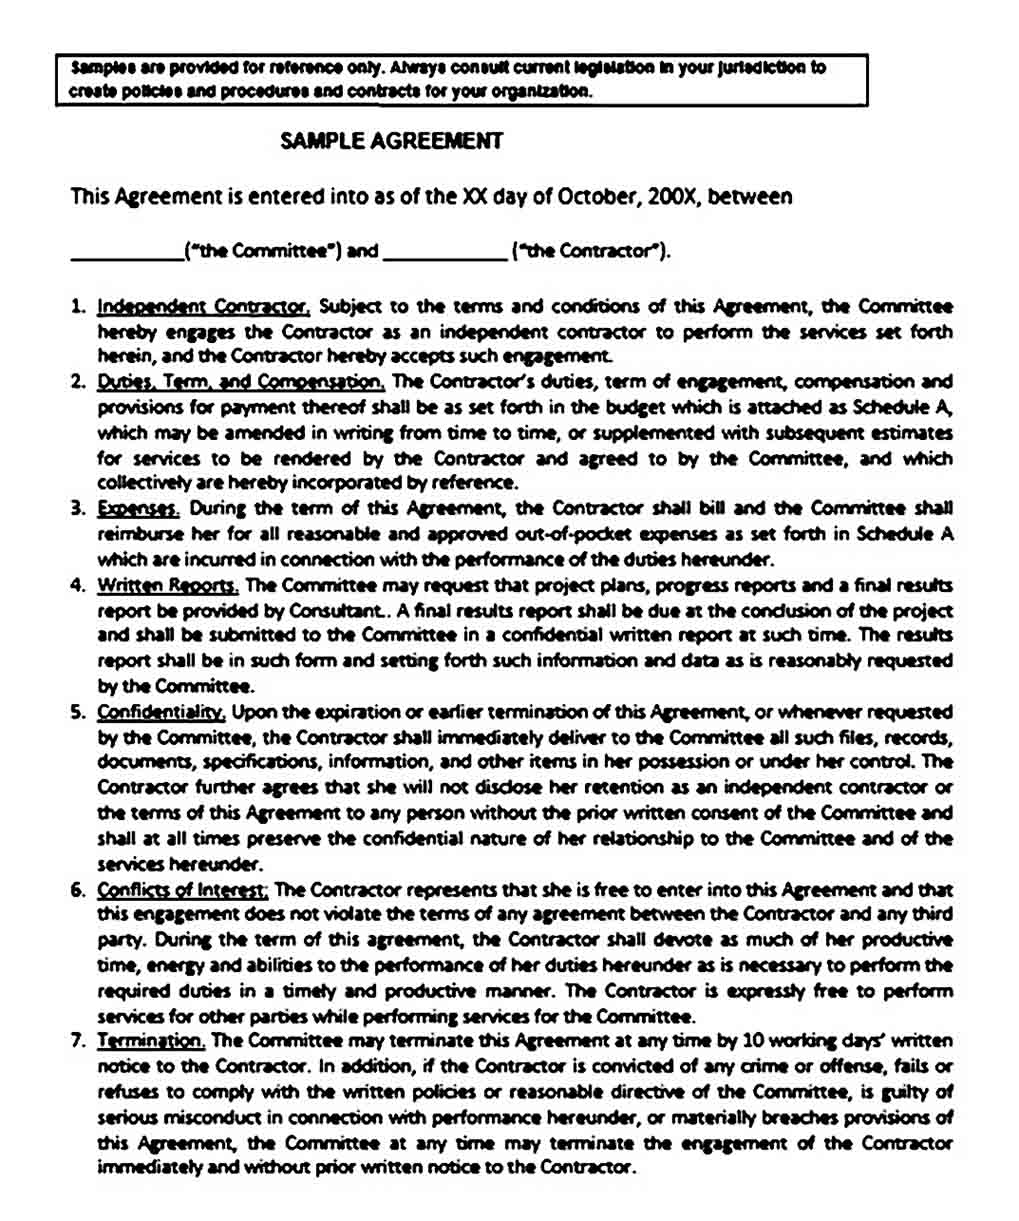 General Business Agreement Between Two Parties